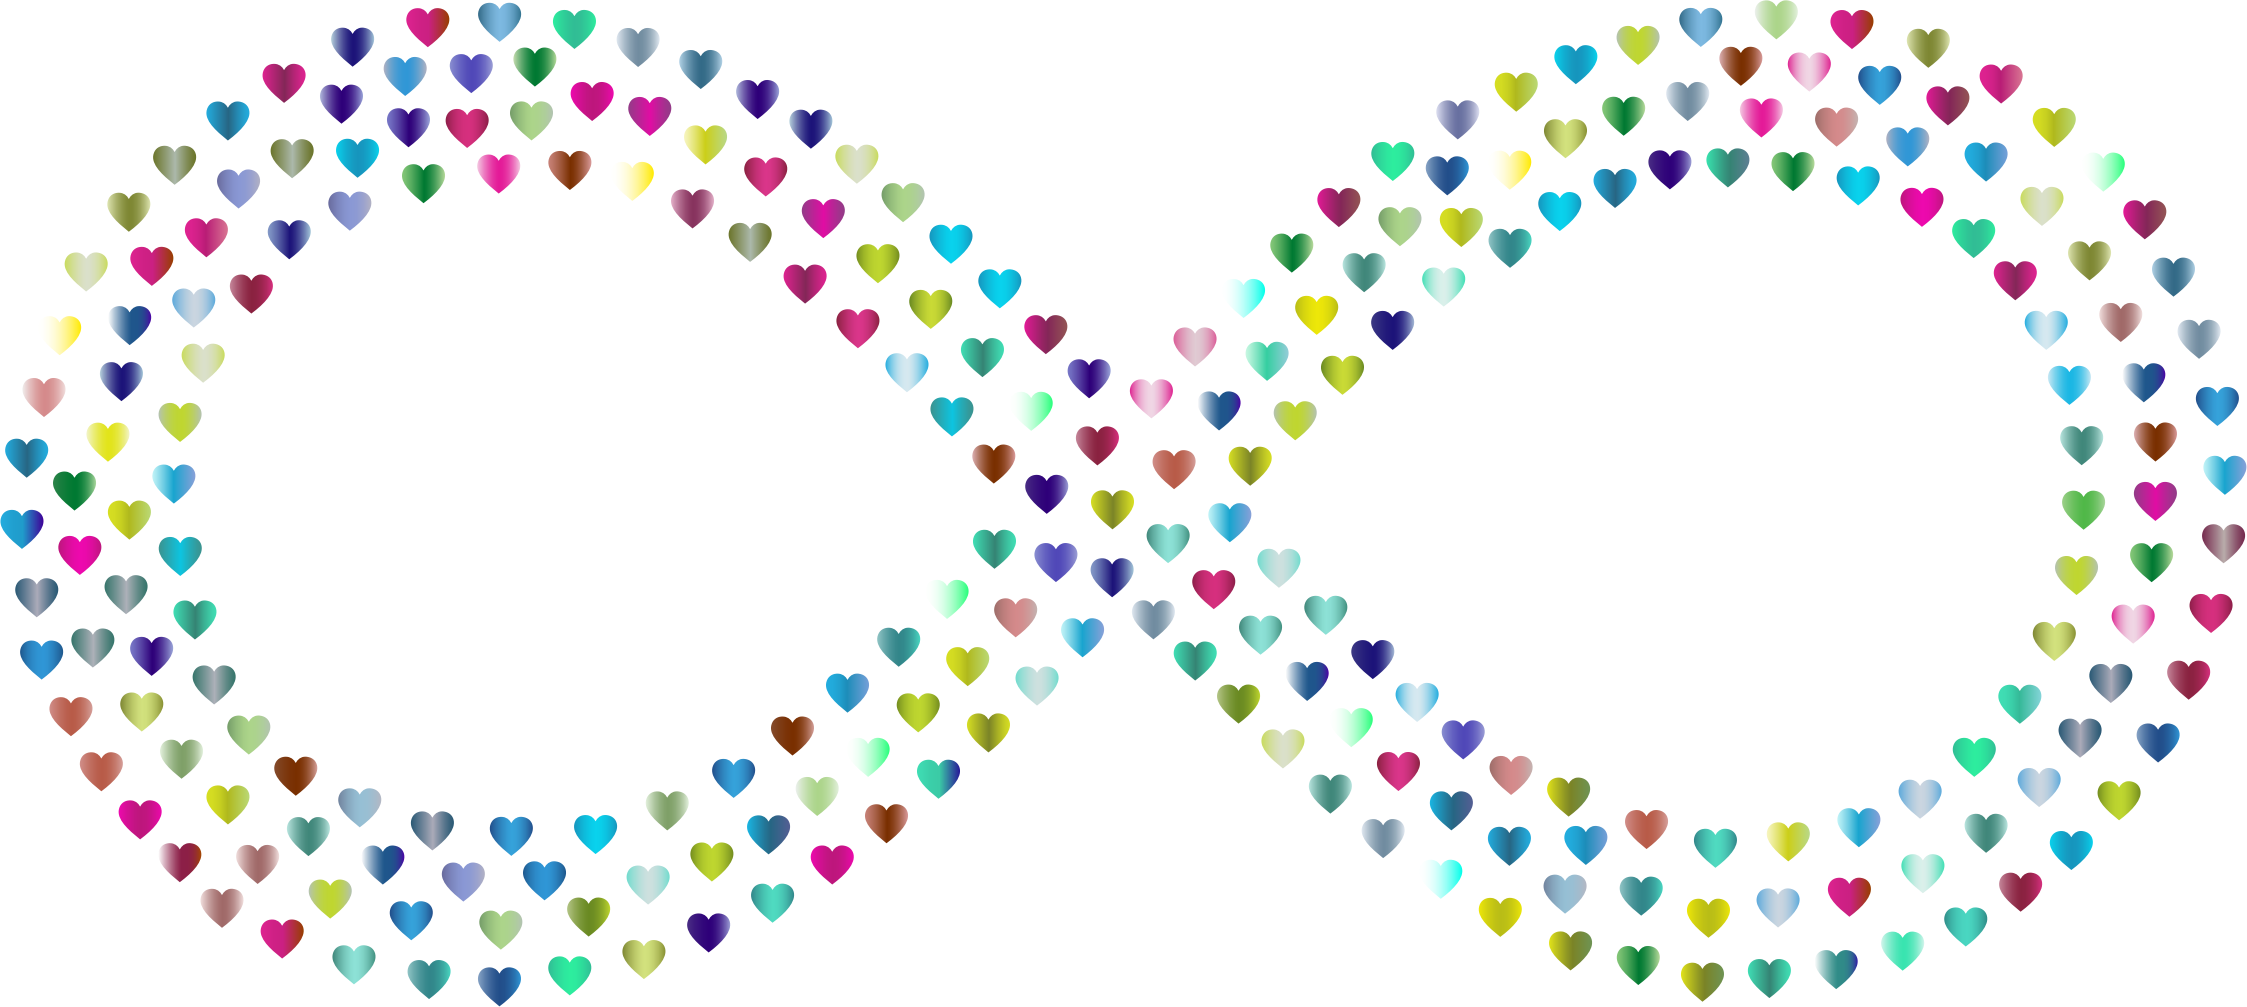 Prismatic infinite no background. Infinity clipart infinity love